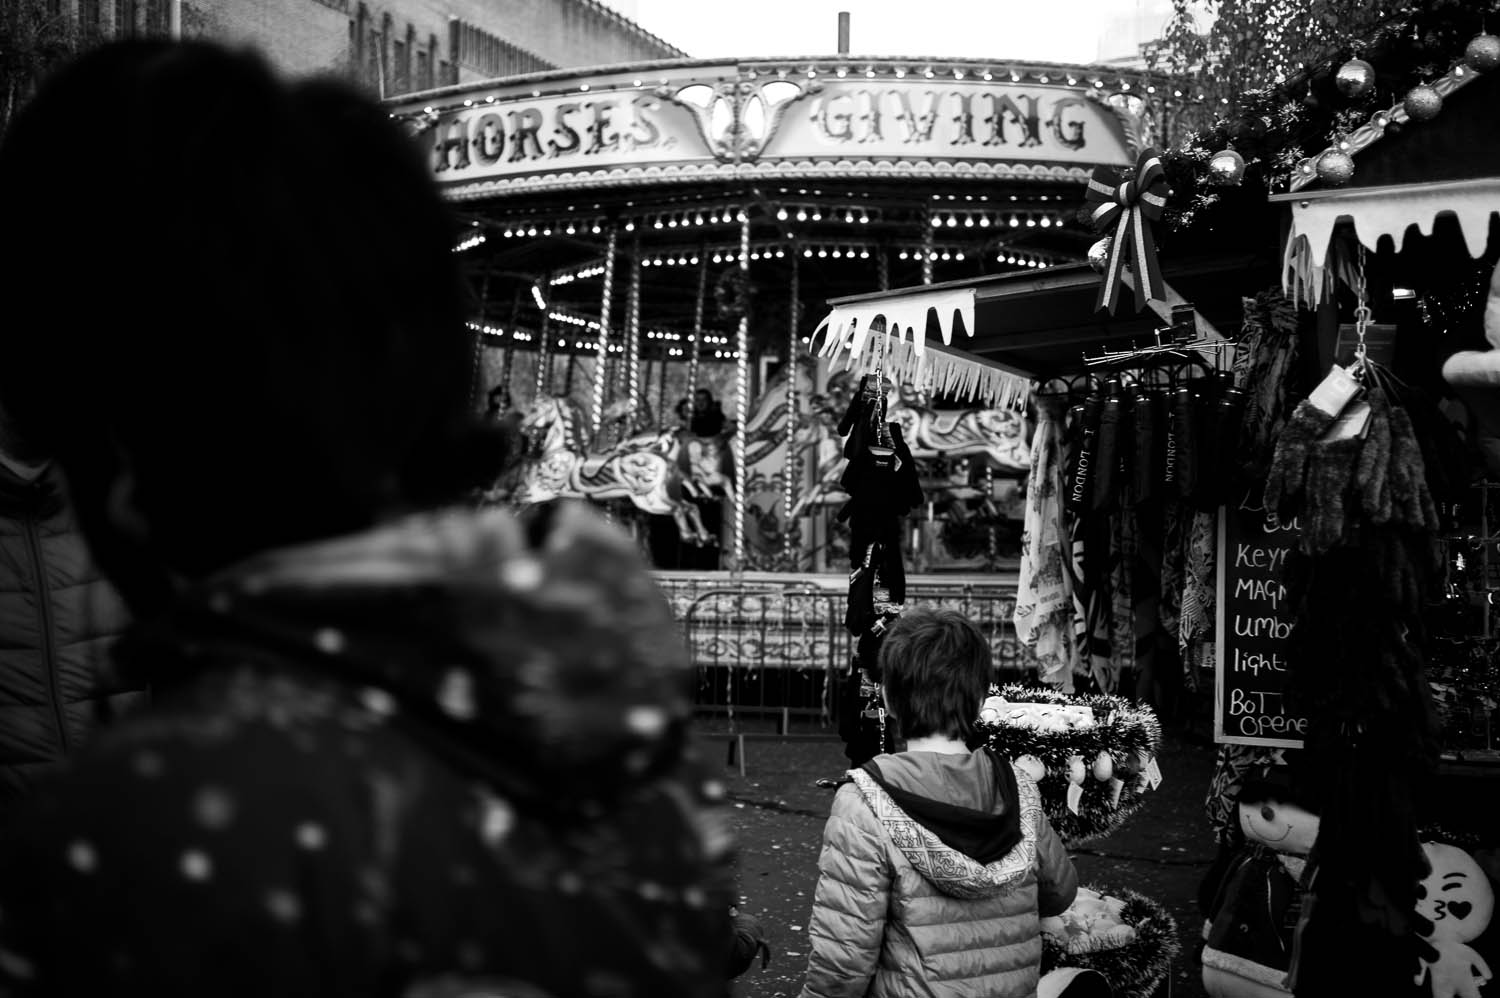 A child walks toward a spinning carousel in London